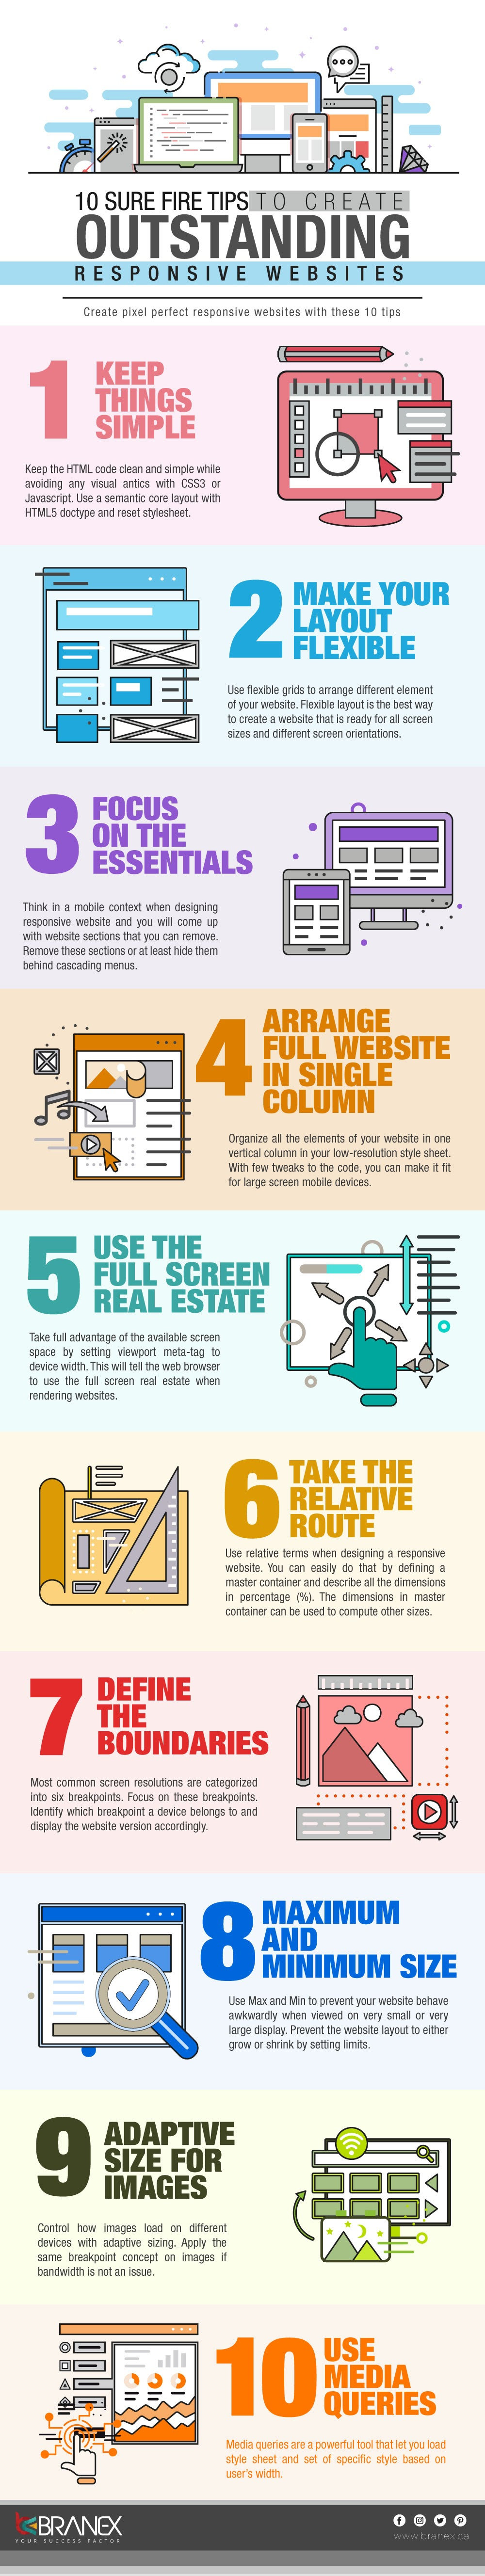 10 Sure-Fire Tips to Create Outstanding Responsive Websites #infographic